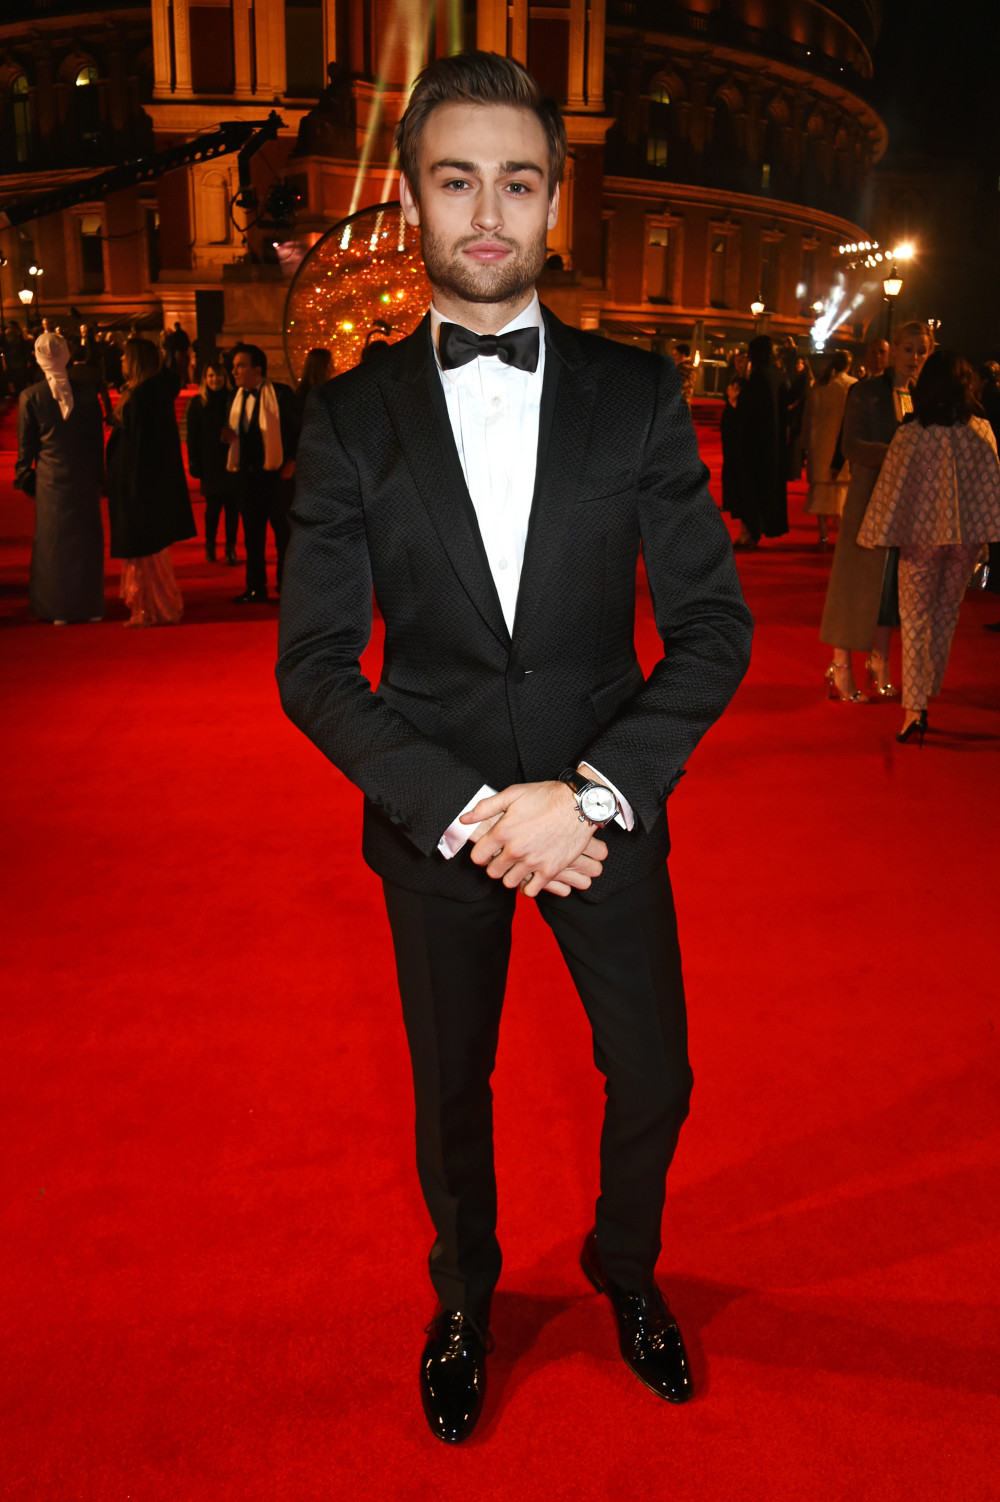 LONDON, ENGLAND - DECEMBER 05: Douglas Booth attends The Fashion Awards 2016 at Royal Albert Hall on December 5, 2016 in London, United Kingdom. (Photo by David M. Benett/Dave Benett/Getty Images)